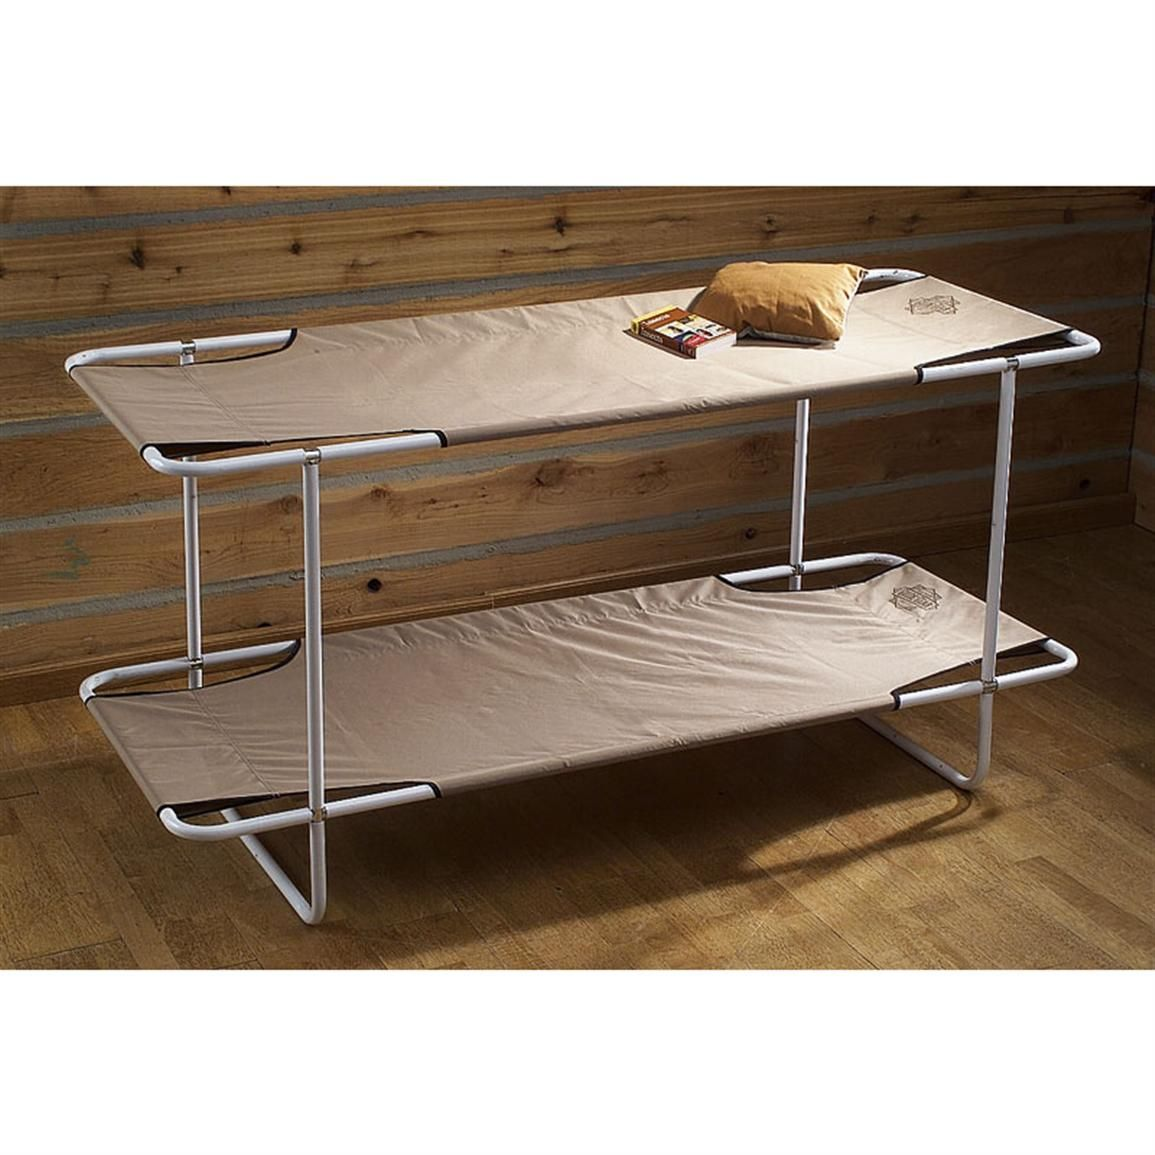 Folding Beds Diy : Guide gear? camp bunk bed khaki cots at